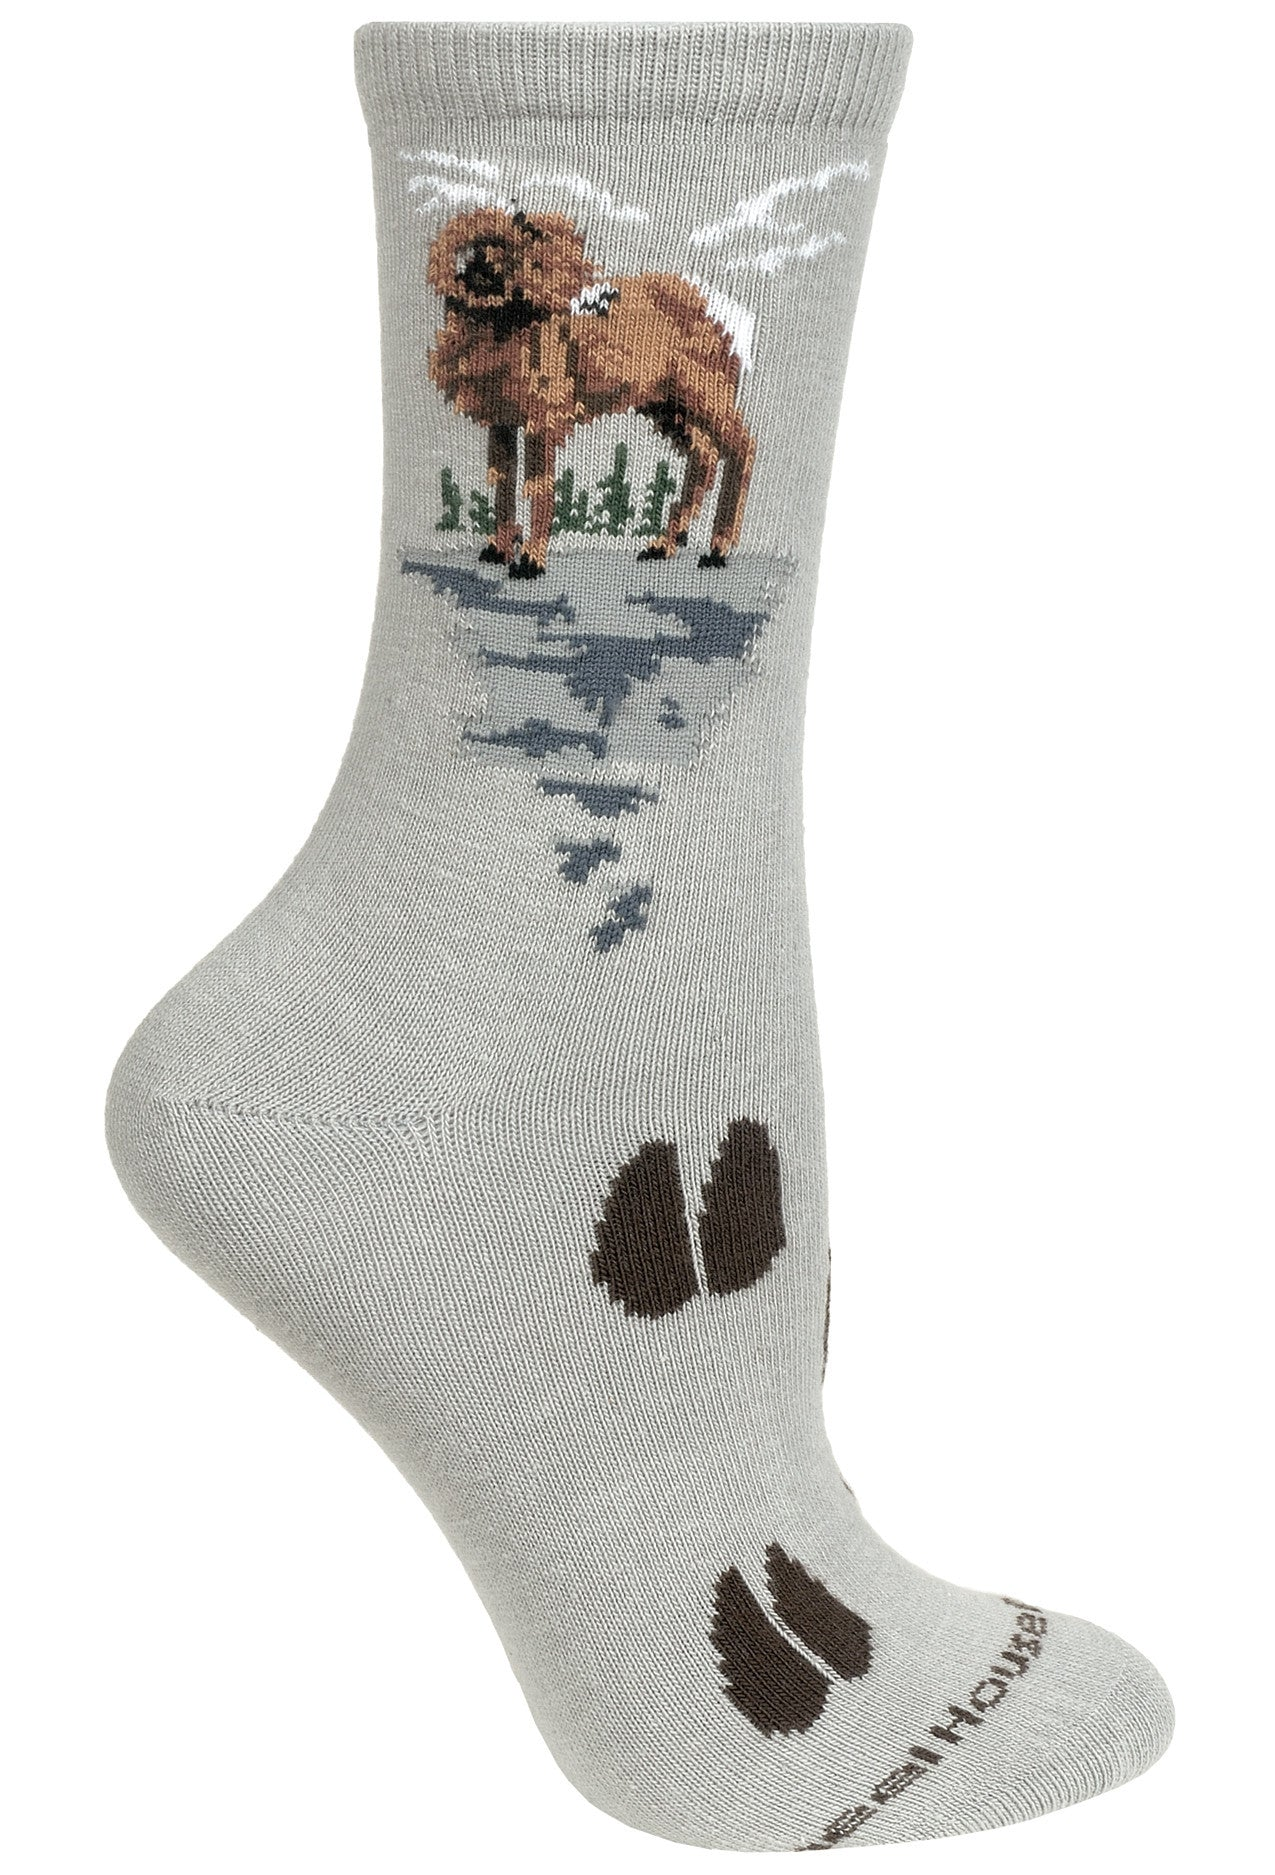 Bighorn Sheep on Gray Socks